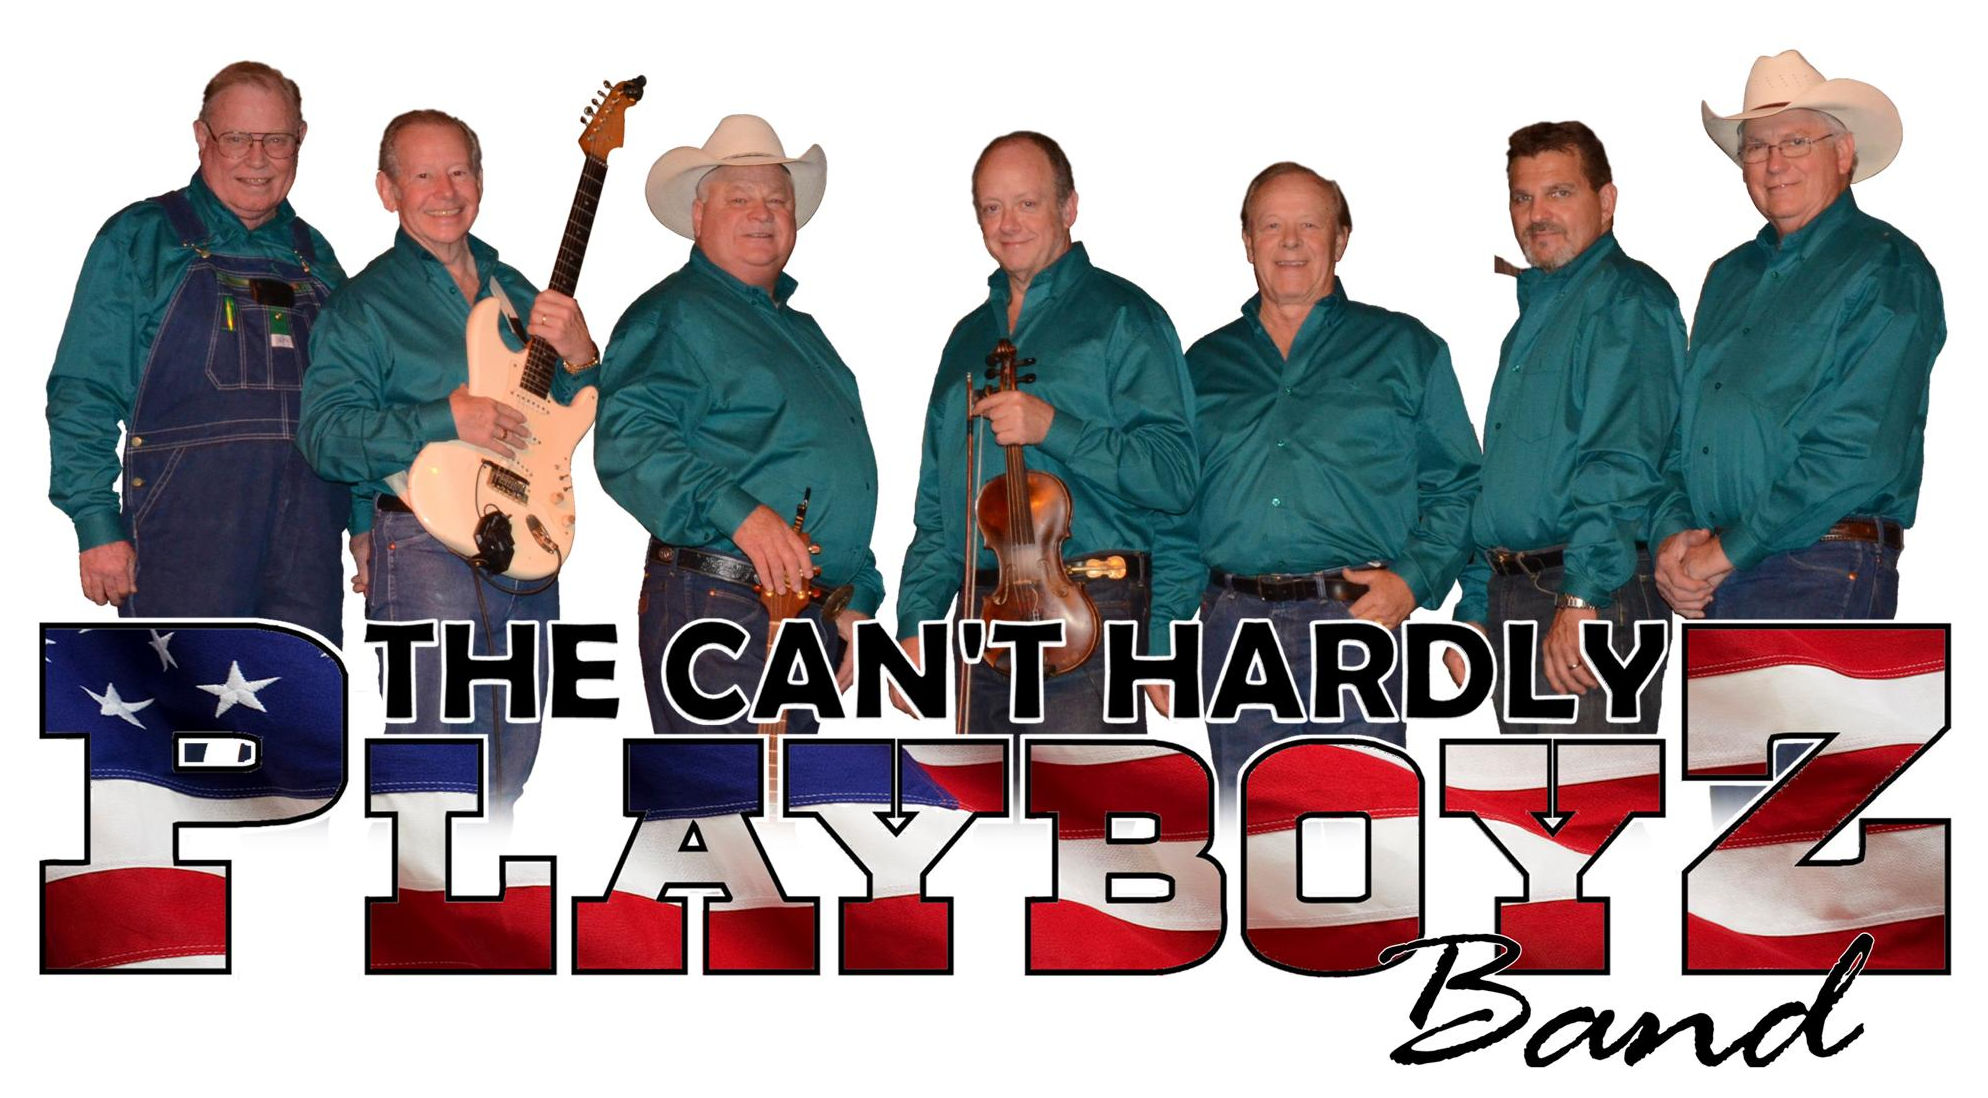 THE CAN'T HARDLY PLAYBOYZ